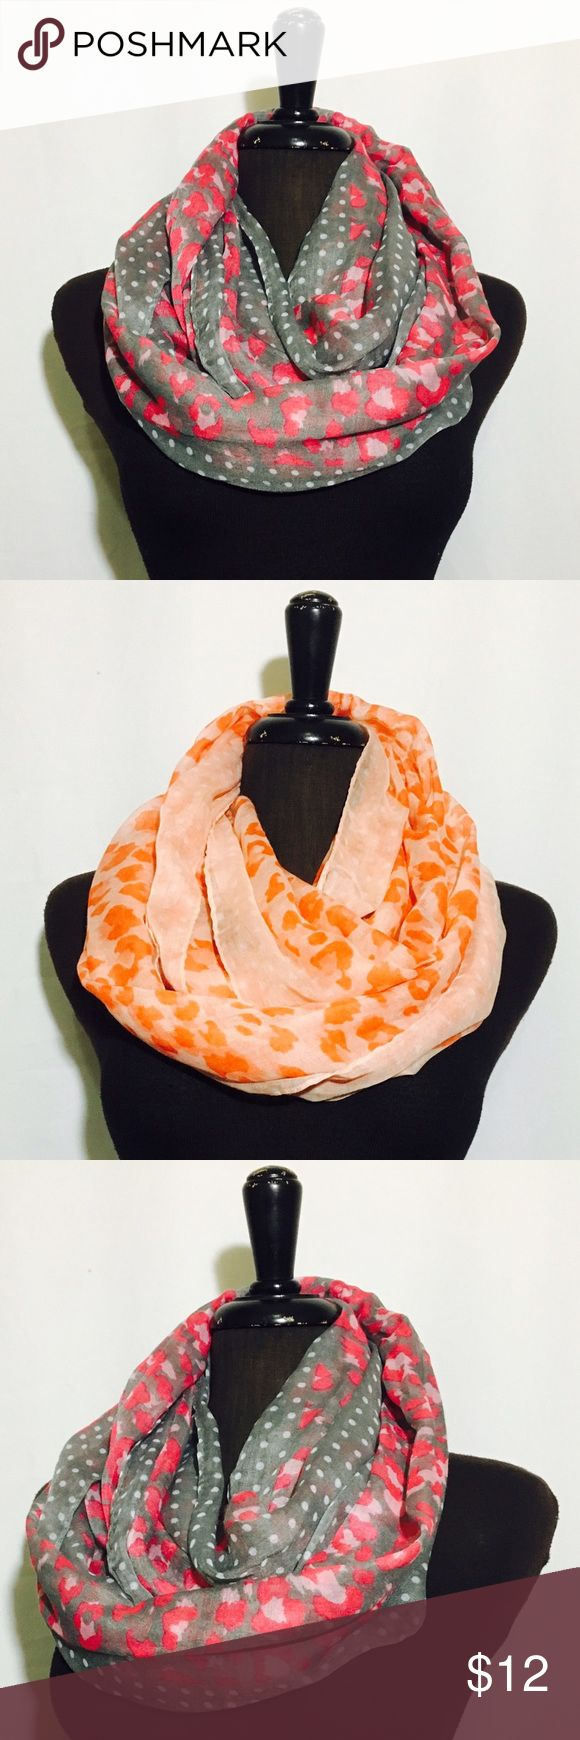 OBLONG PATTERN INFINITY SCARF 2x1 Take two scarfs for the price of one. 100%Viscose, imported, single pack in a OPP bag. Accessories Scarves & Wraps